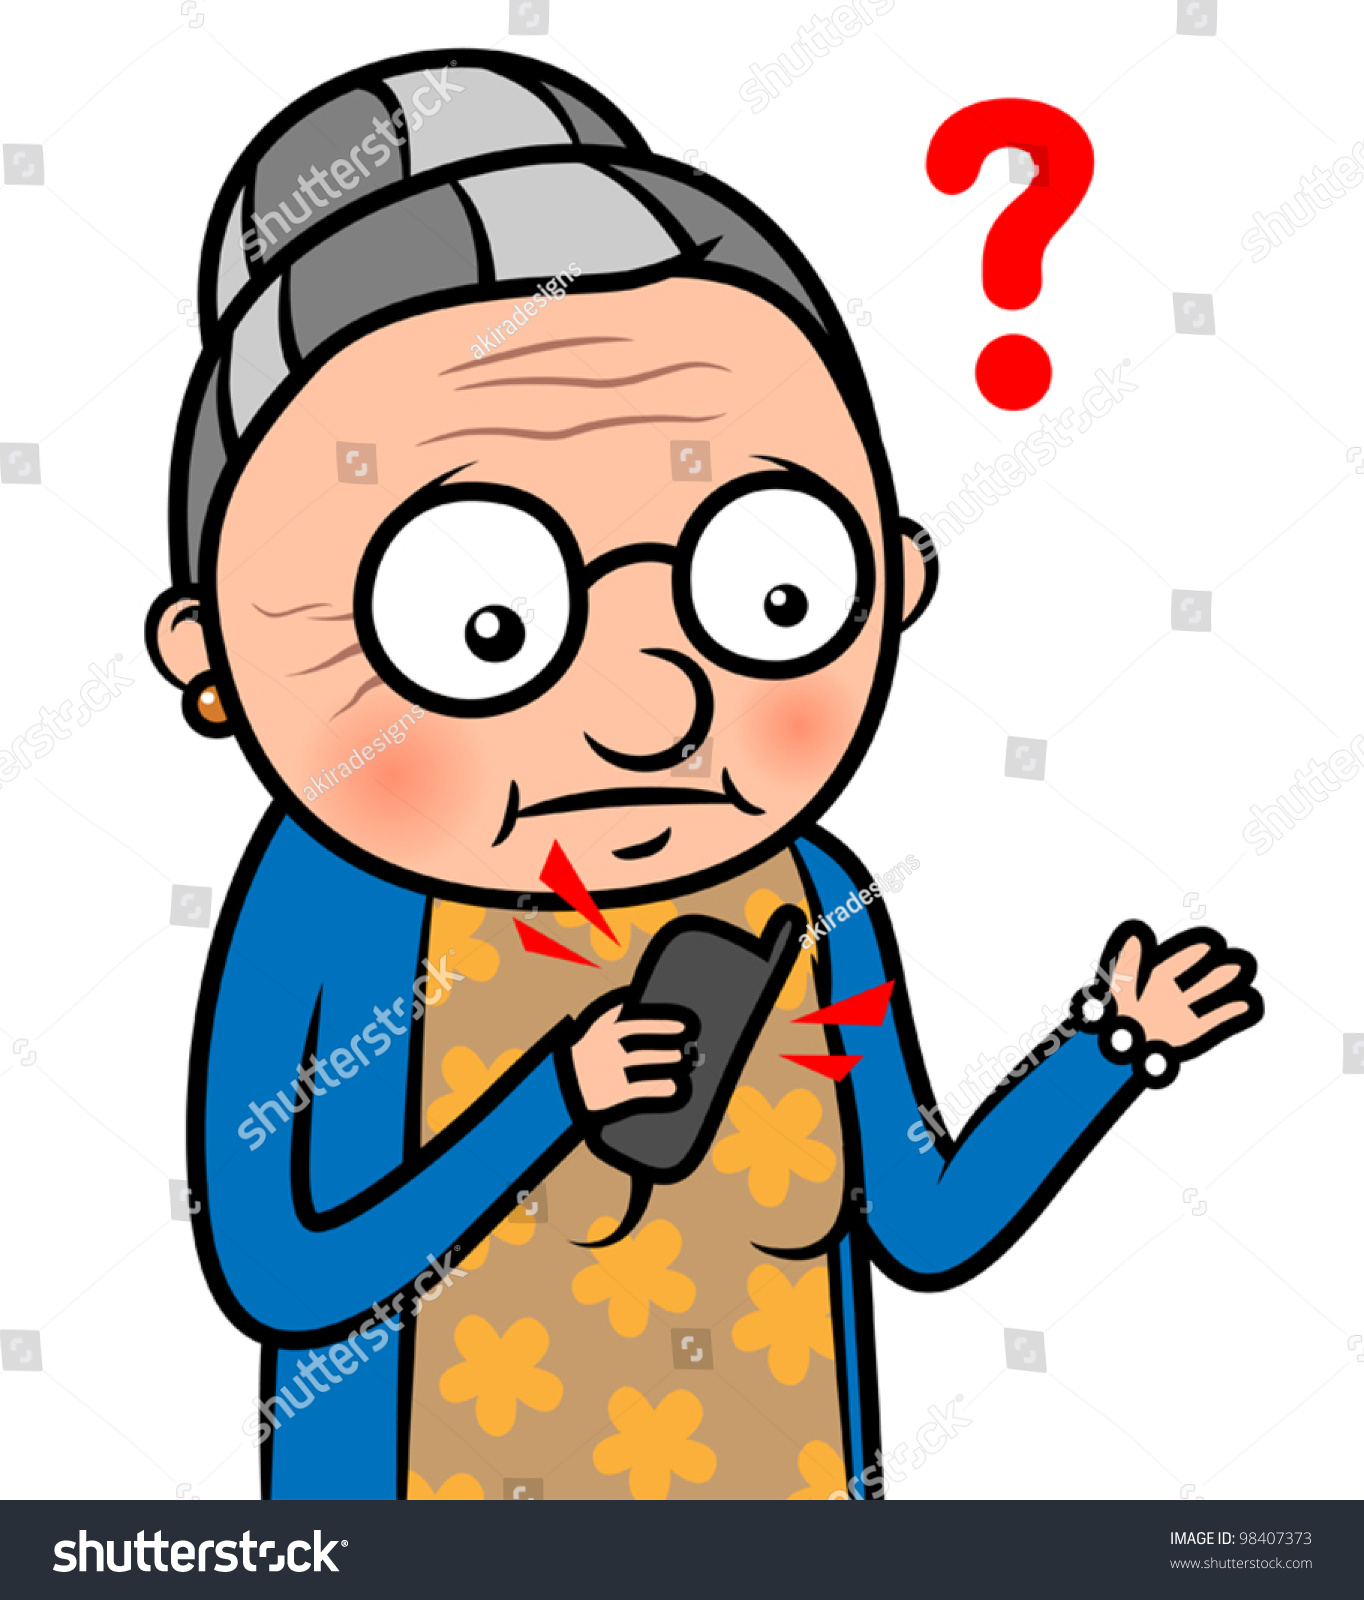 Confused woman clipart vector download Cartoon Vector Illustration Of A Confused Old Woman - Free Clipart vector download